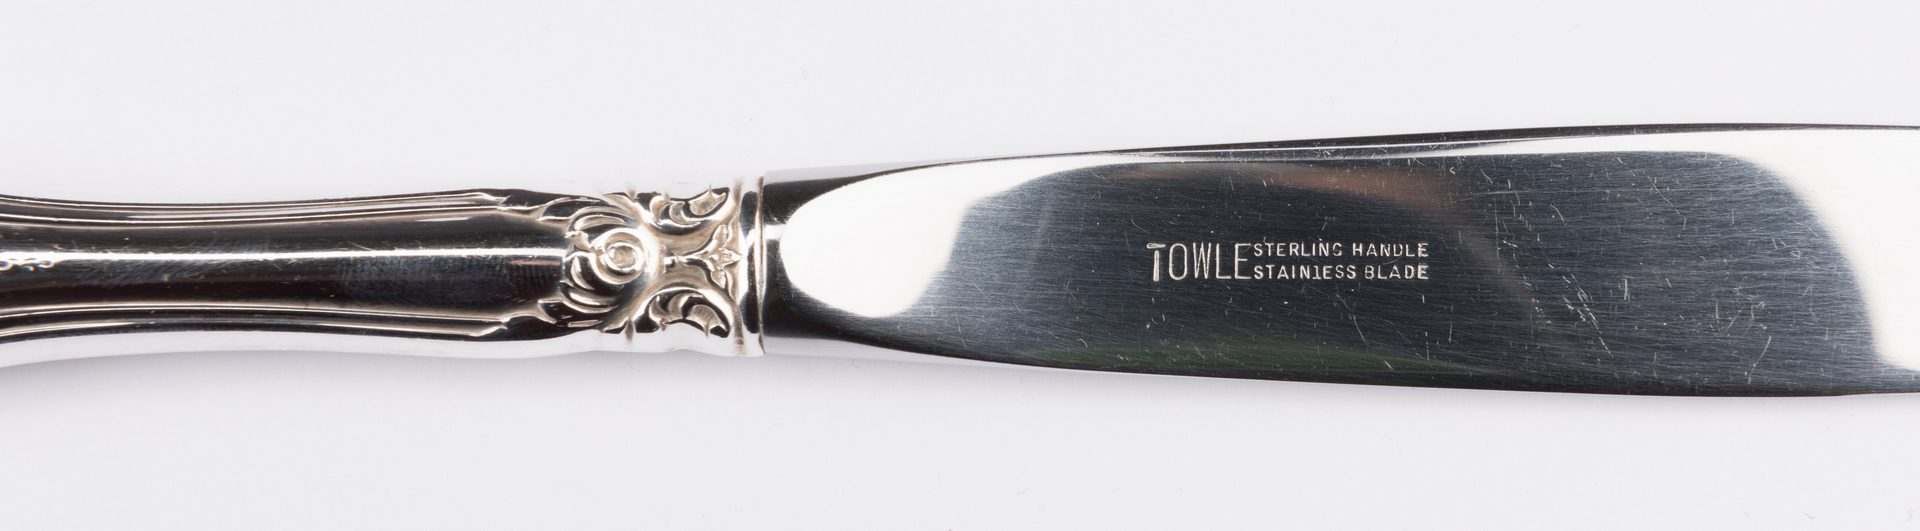 Lot 567: Towle Old Master Flatware, 57 pcs.